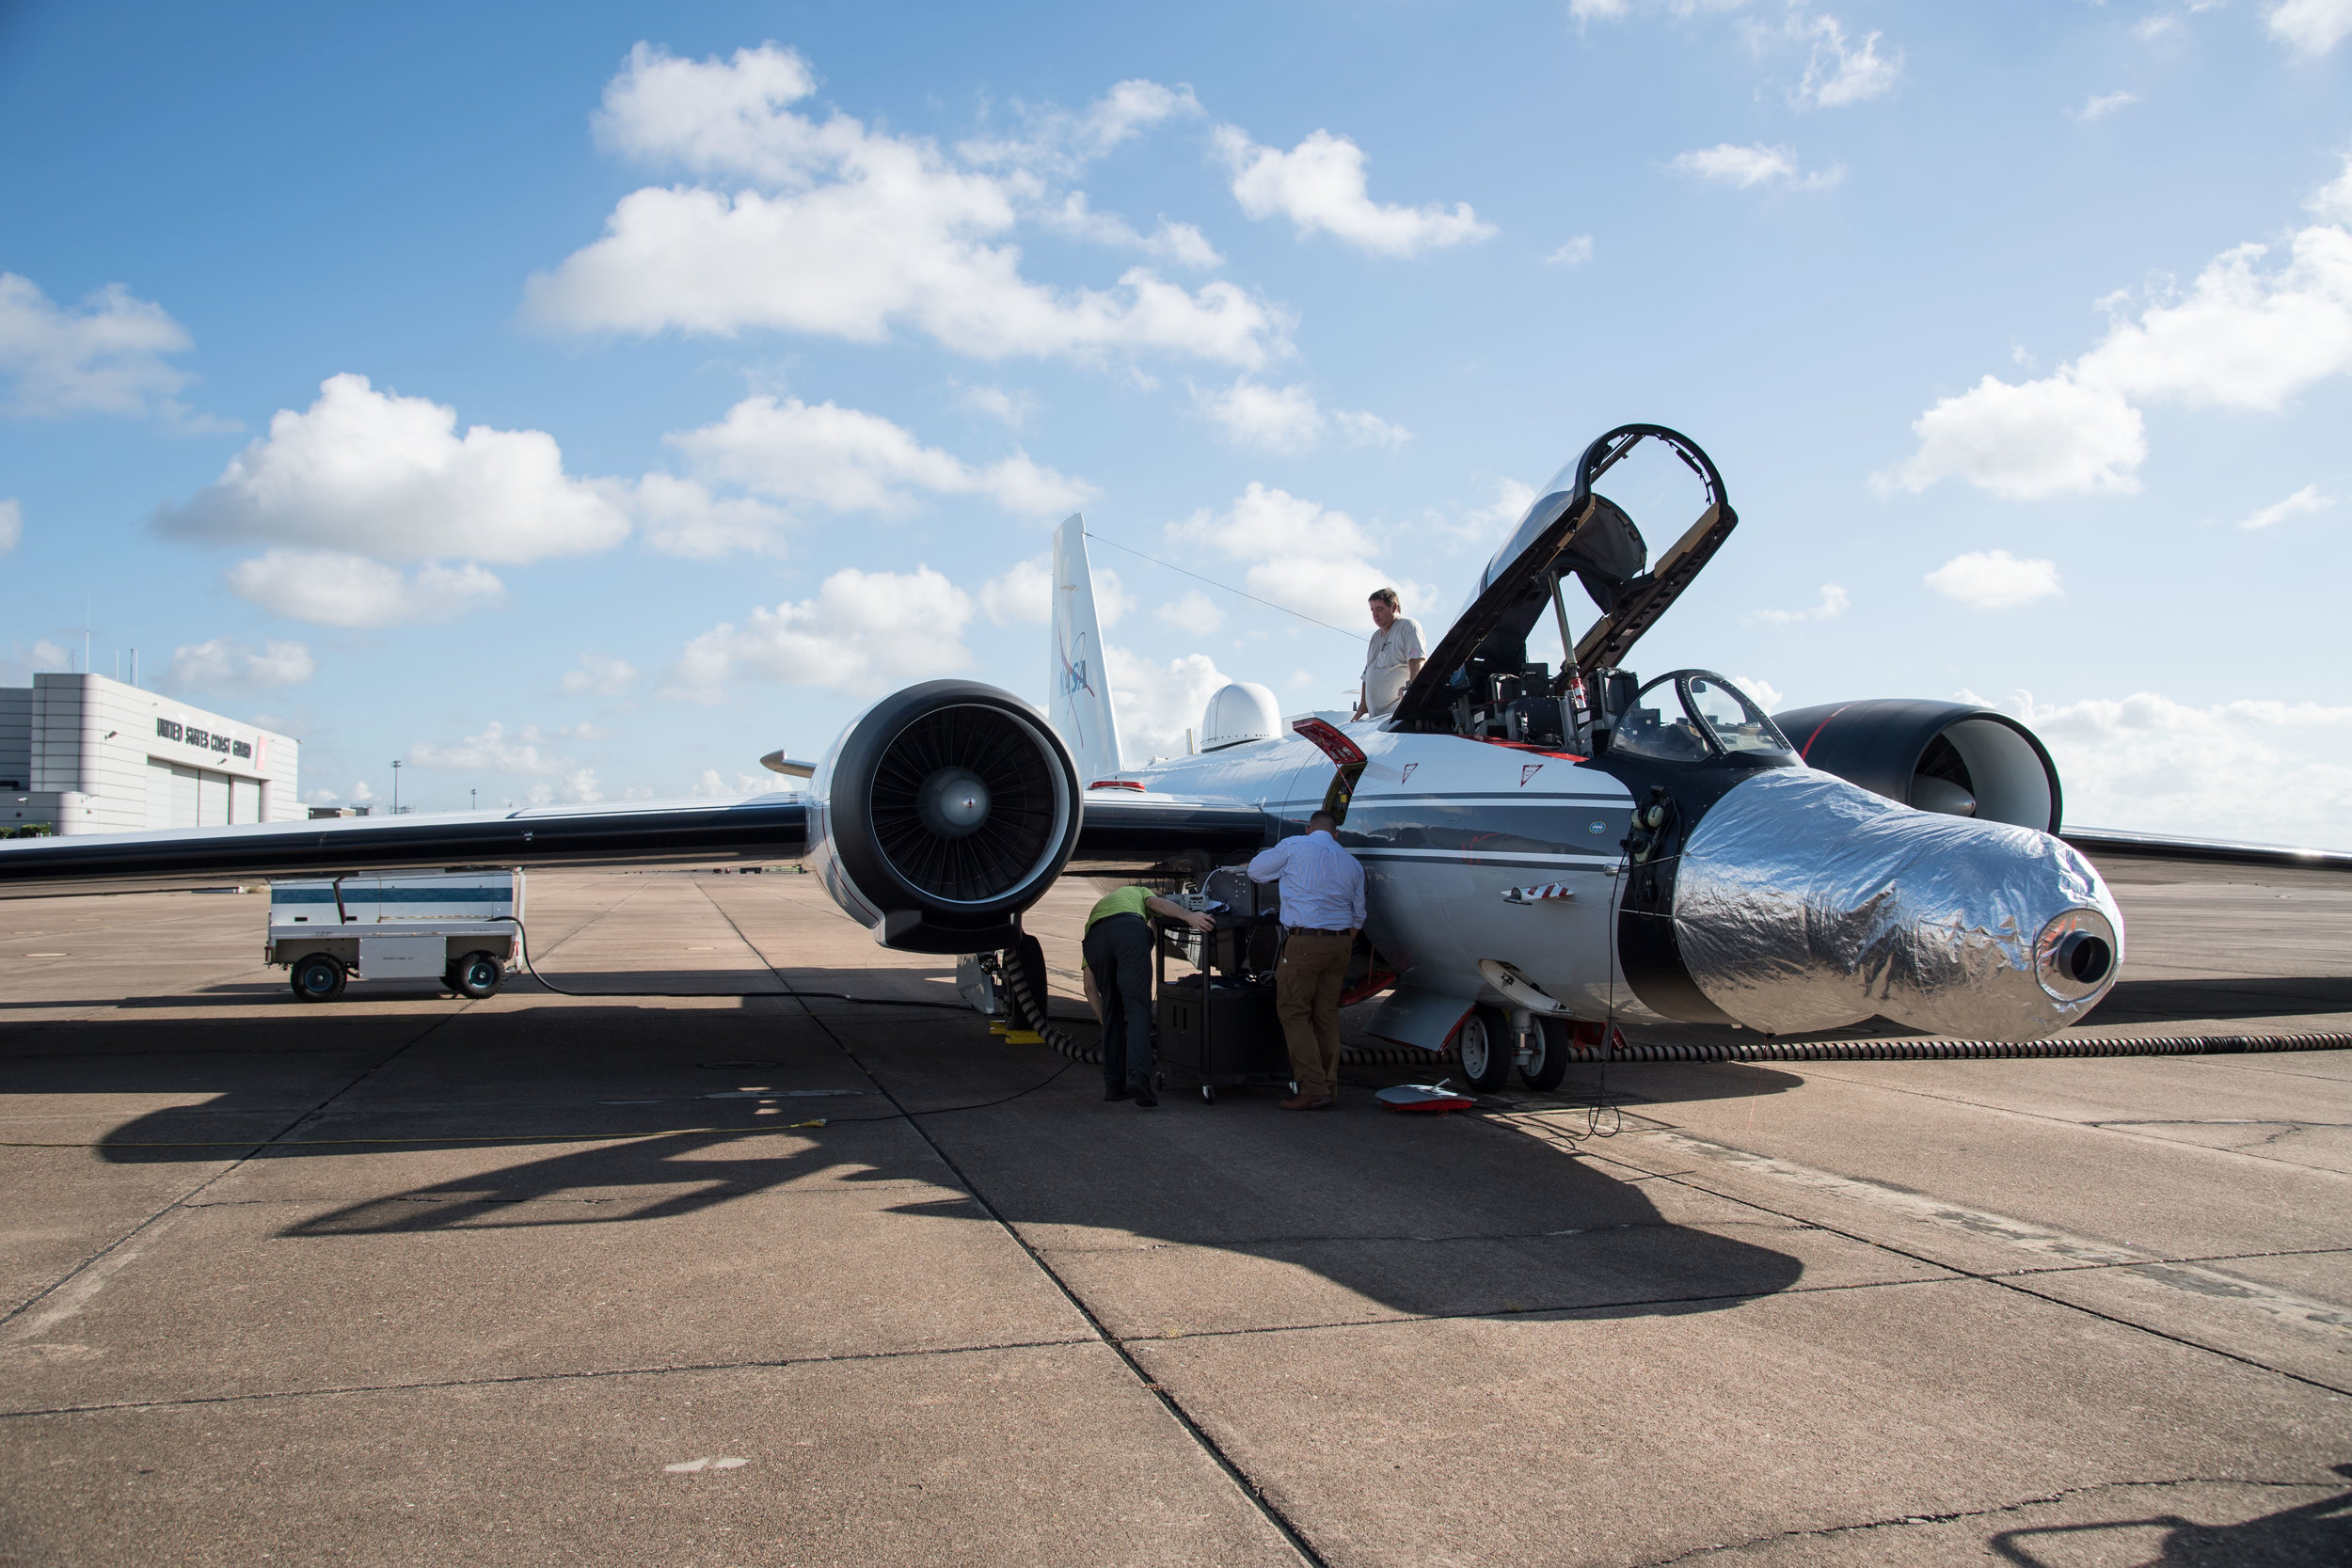 One of the WB-57F jets is readied for a test run at NASA's Johnson Space Center in Houston. The instruments are mounted under the silver casing on the nose of the plane. - Image Credits: NASA's Johnson Space Center/Norah Moran